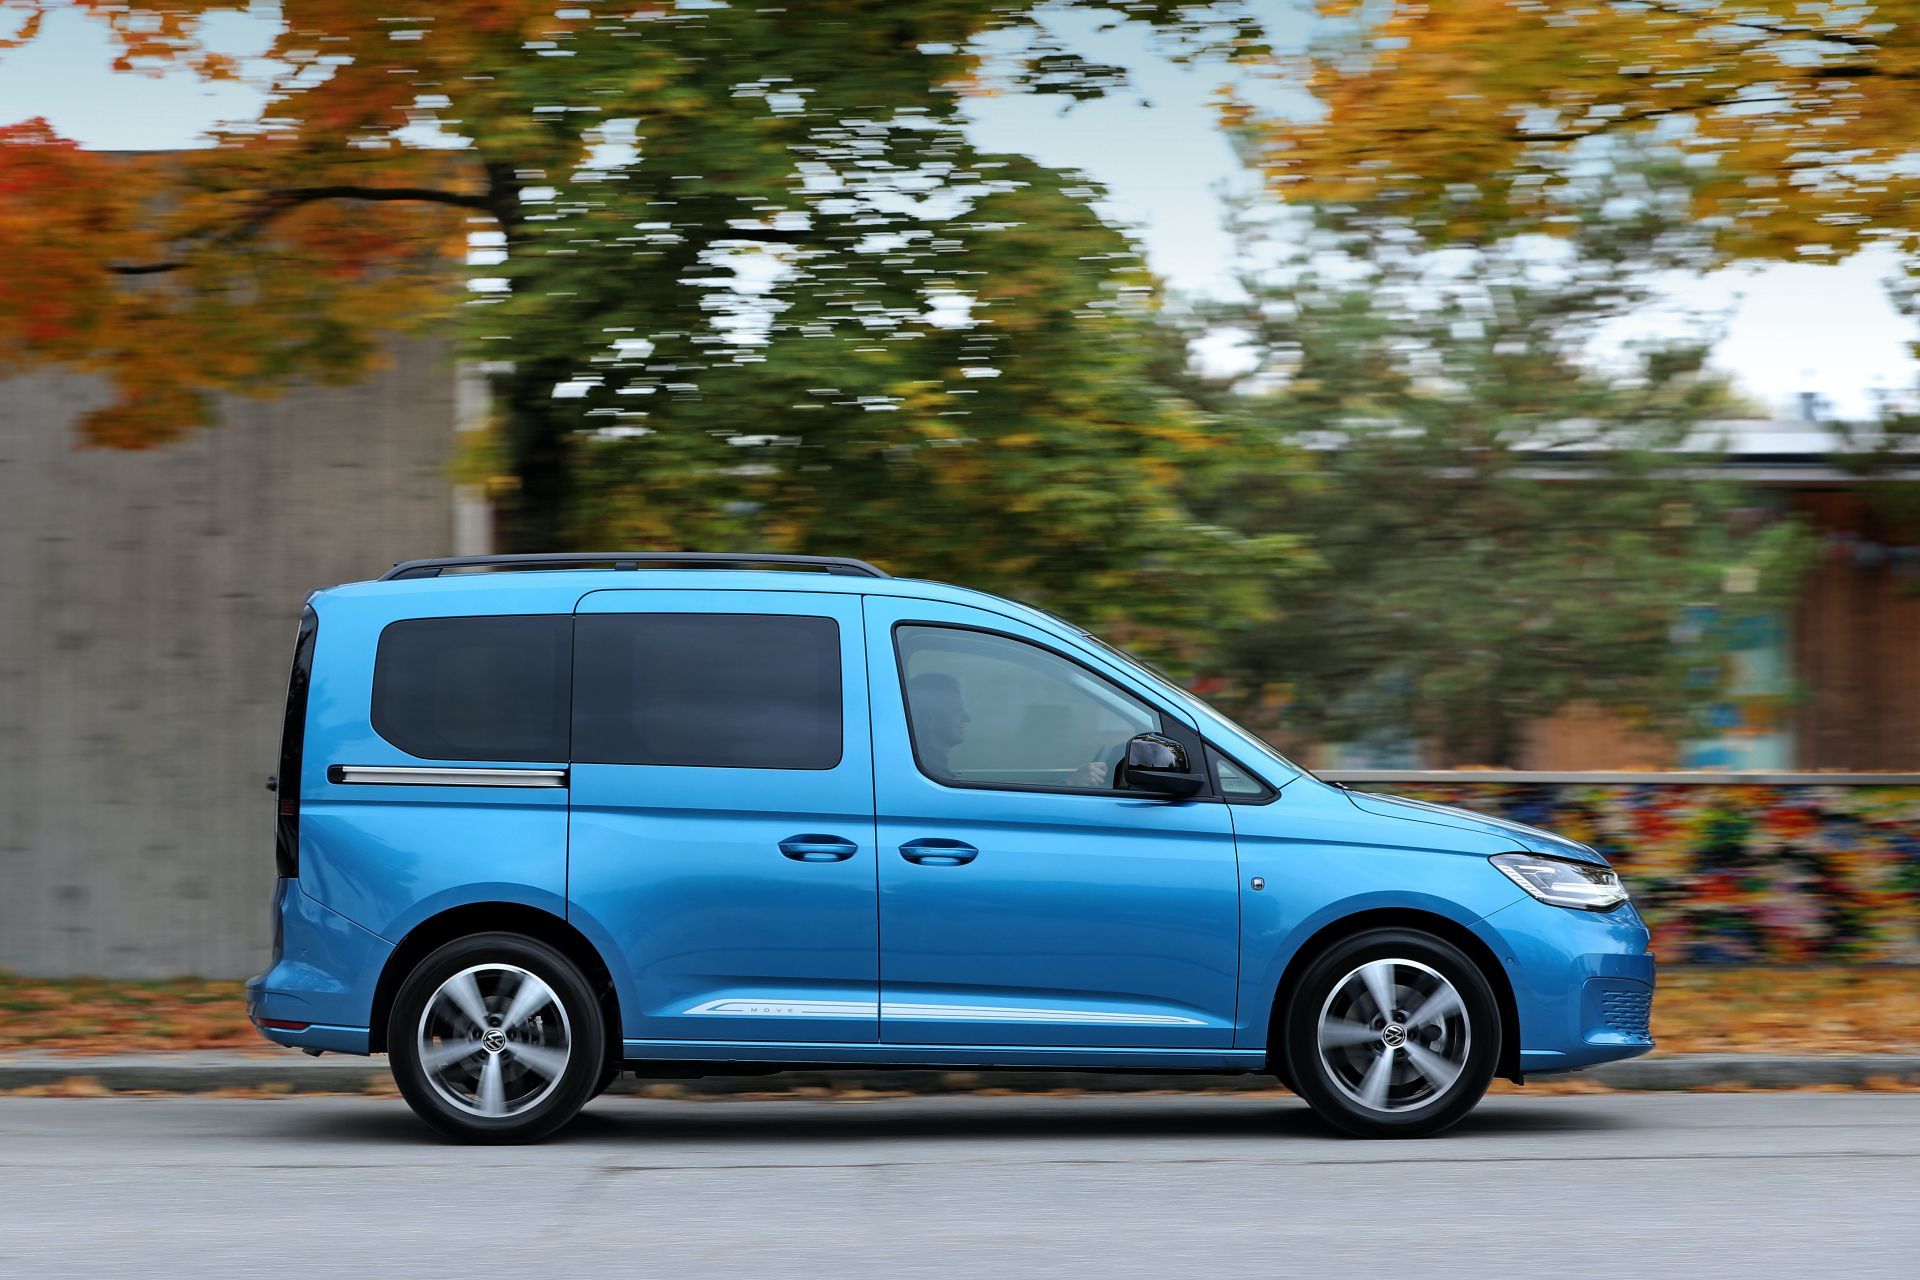 all-new 2021 vw caddy: here's everything you need to know